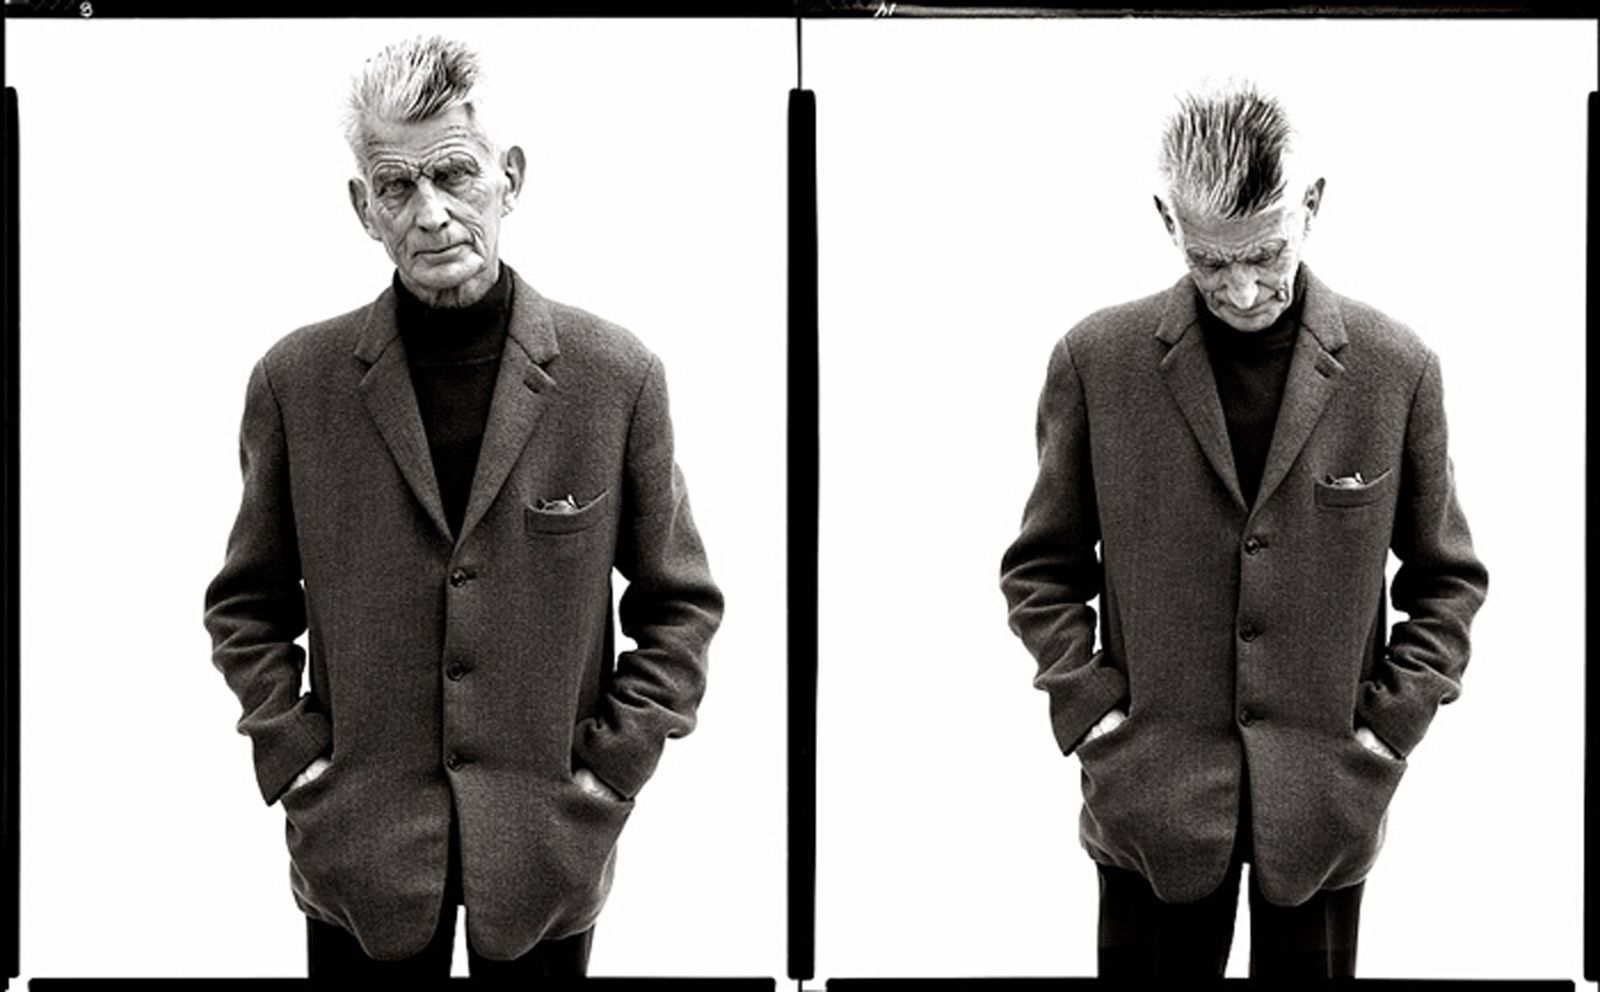 """Samuel Beckett, writer, Paris, April 13"", 1979 de Richard AVEDON - Courtesy Fondation Avedon"